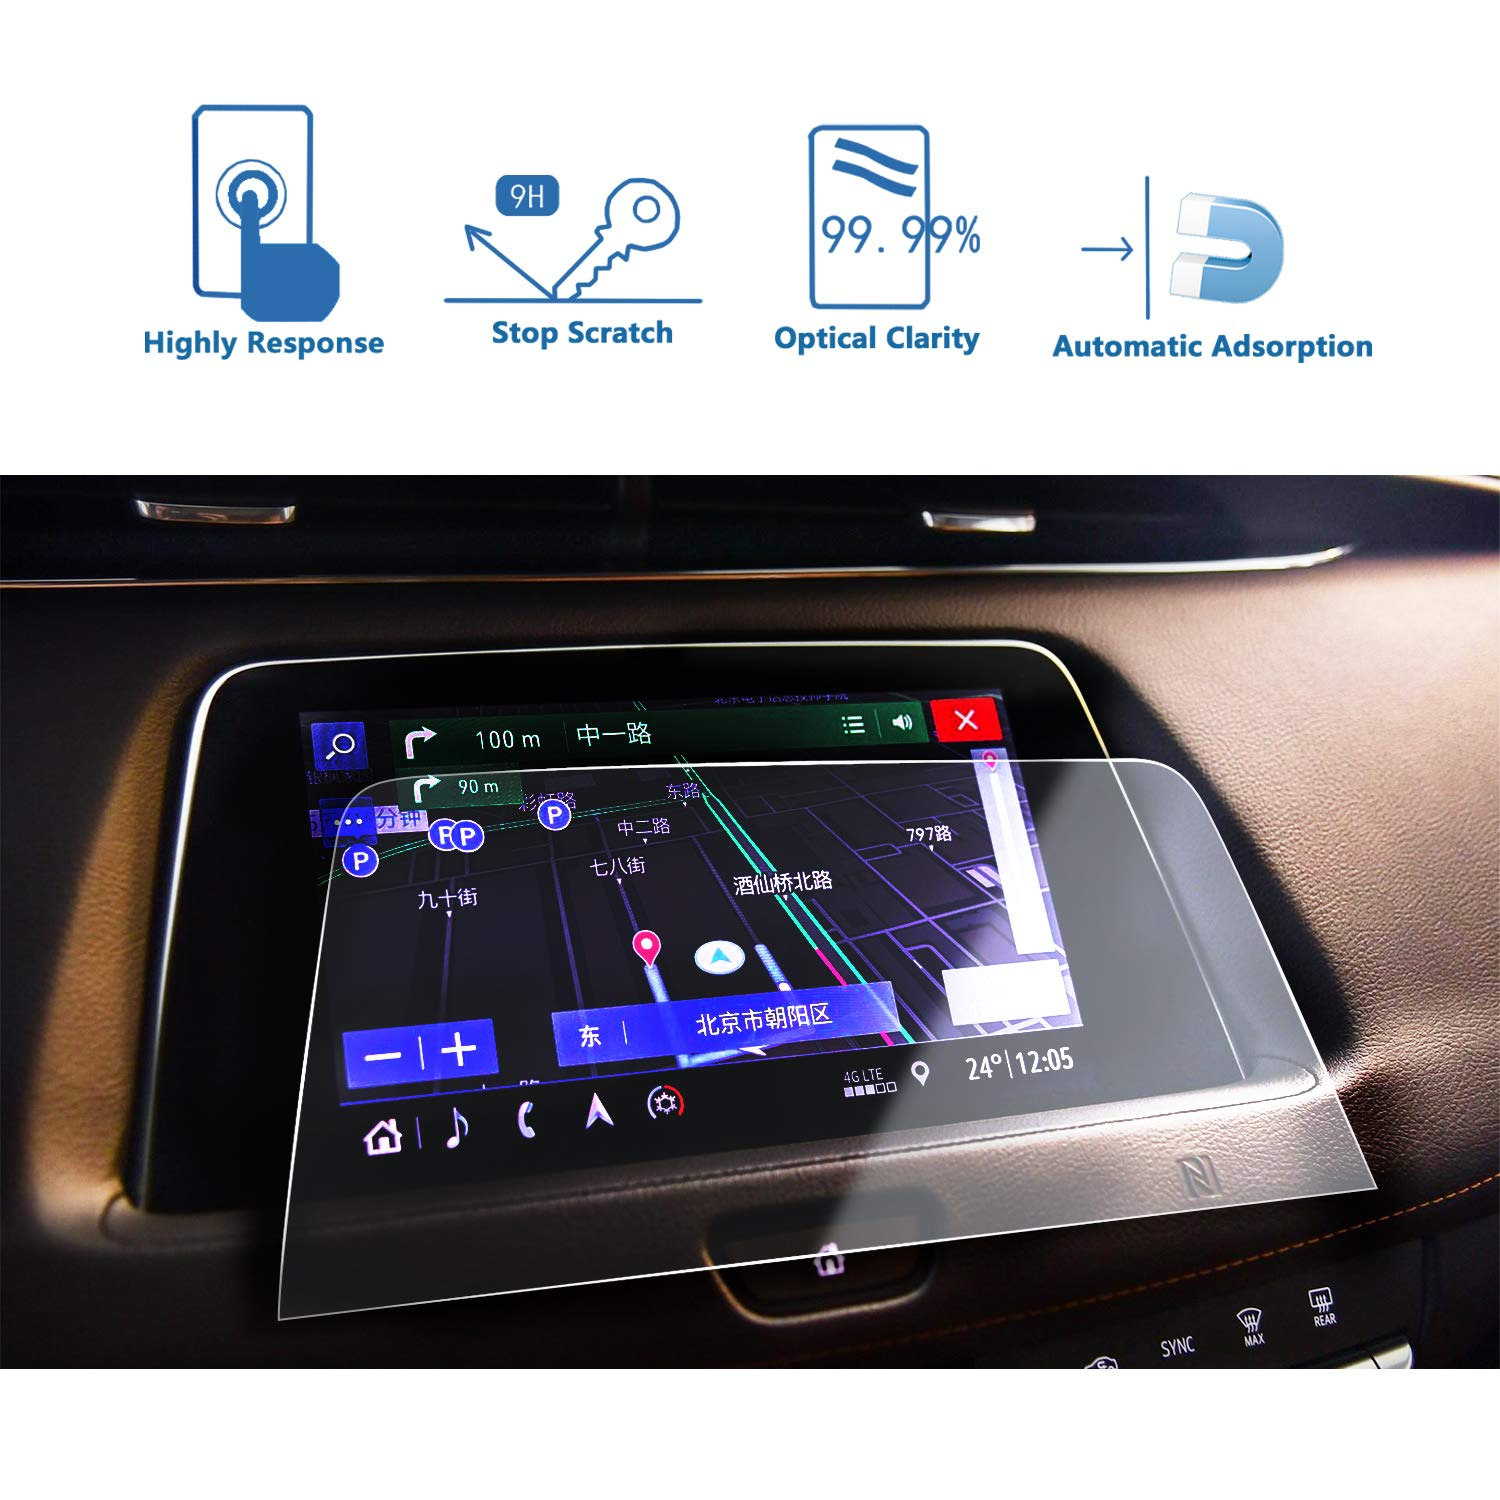 LFOTPP 2019 Cadillac XT4 Navigation Screen Protector, Clear Tempered Glass Car Display Touch Infotainment Screen Scratch-Resistant Extreme Clarity